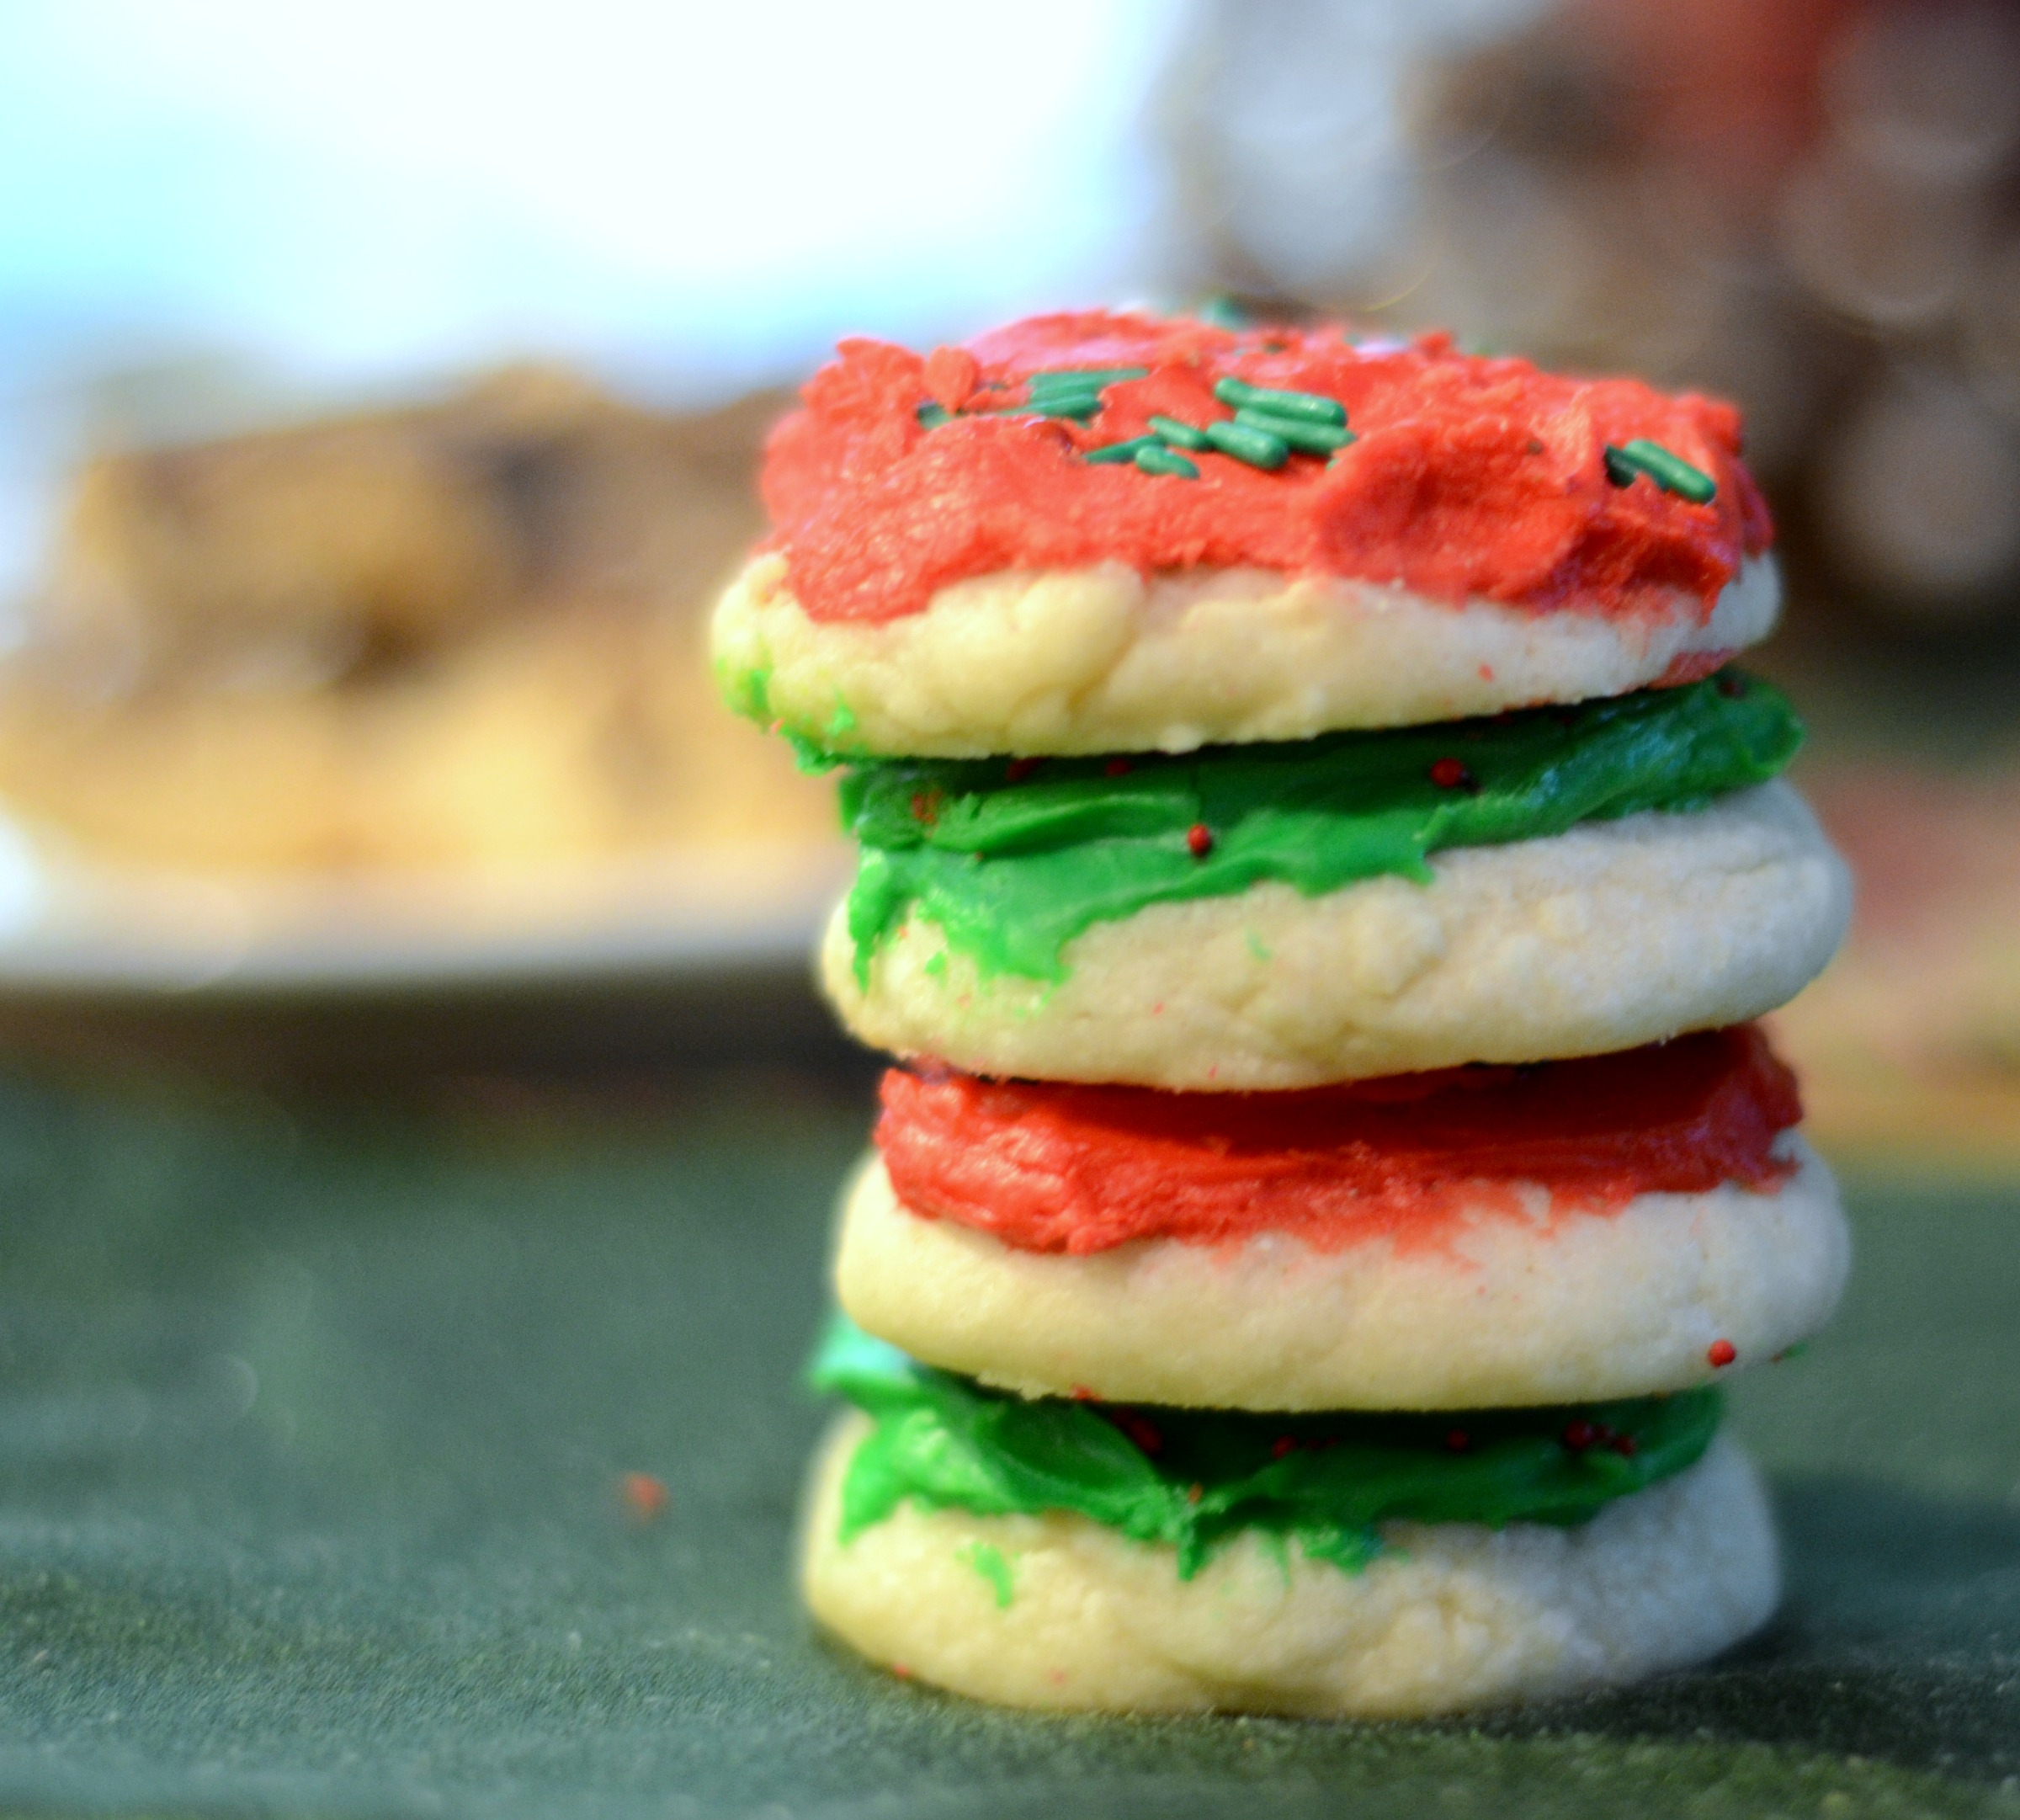 a stack of red and green soft sugar cookies